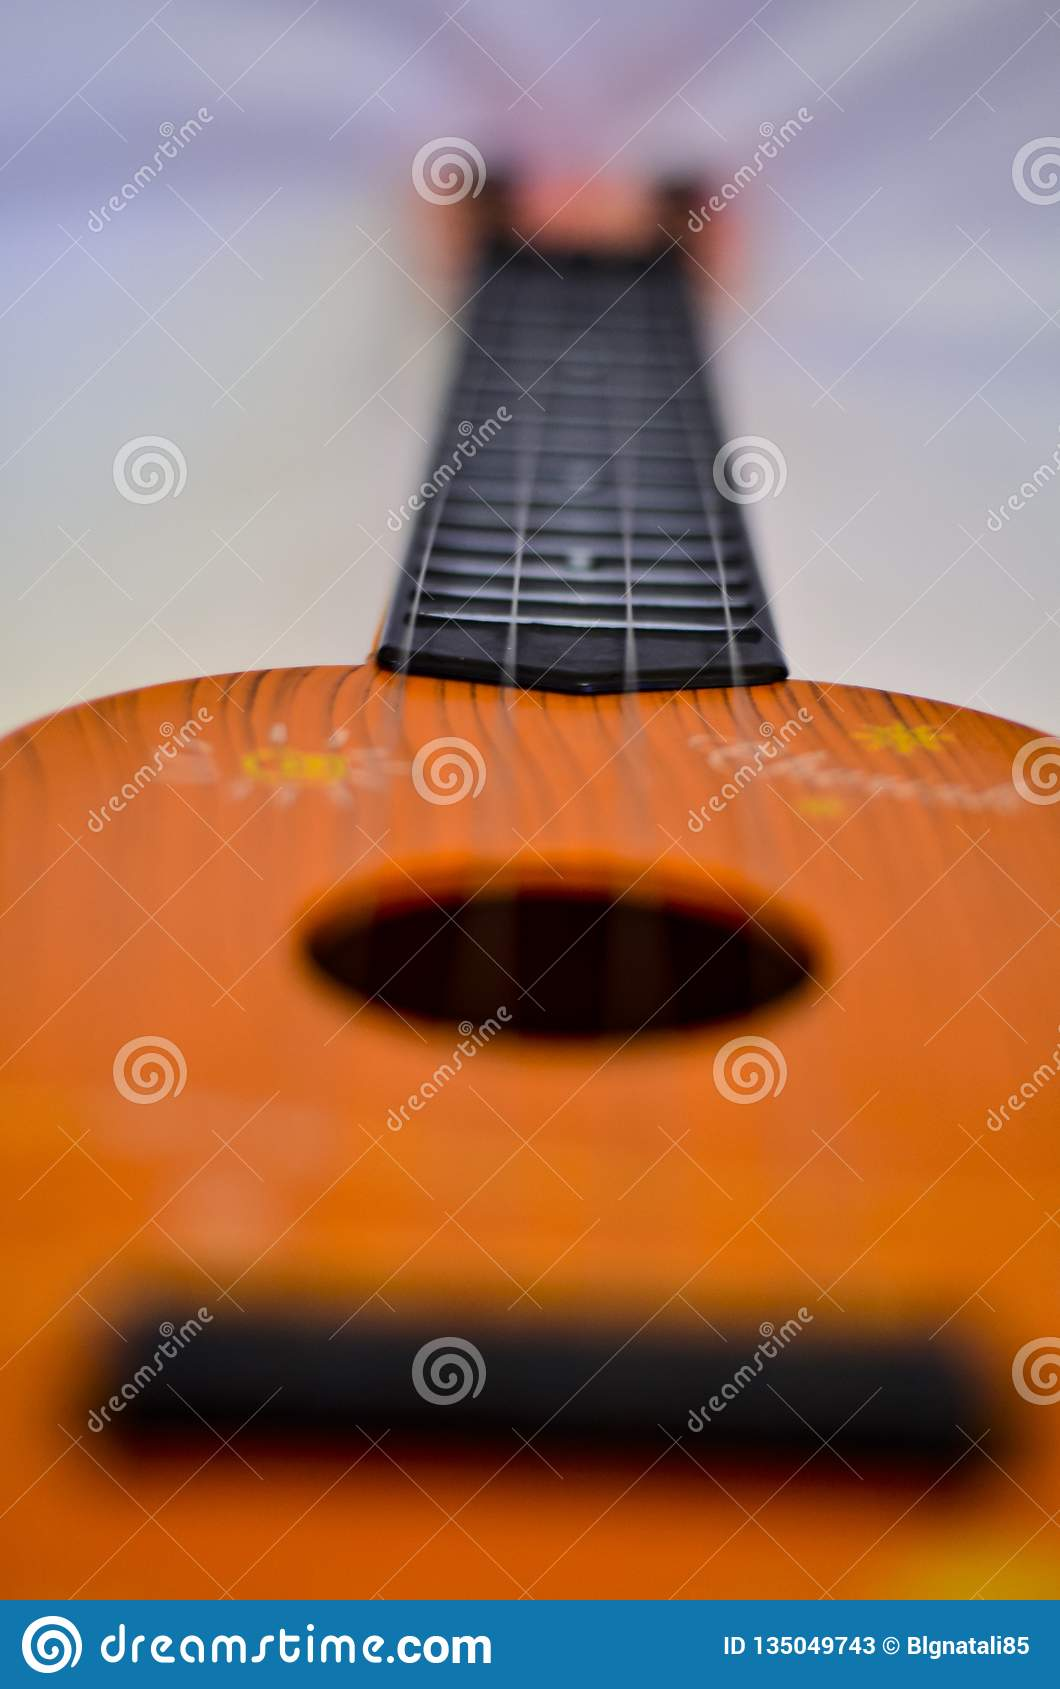 Close-up of a guitar string with a soft blurred background.